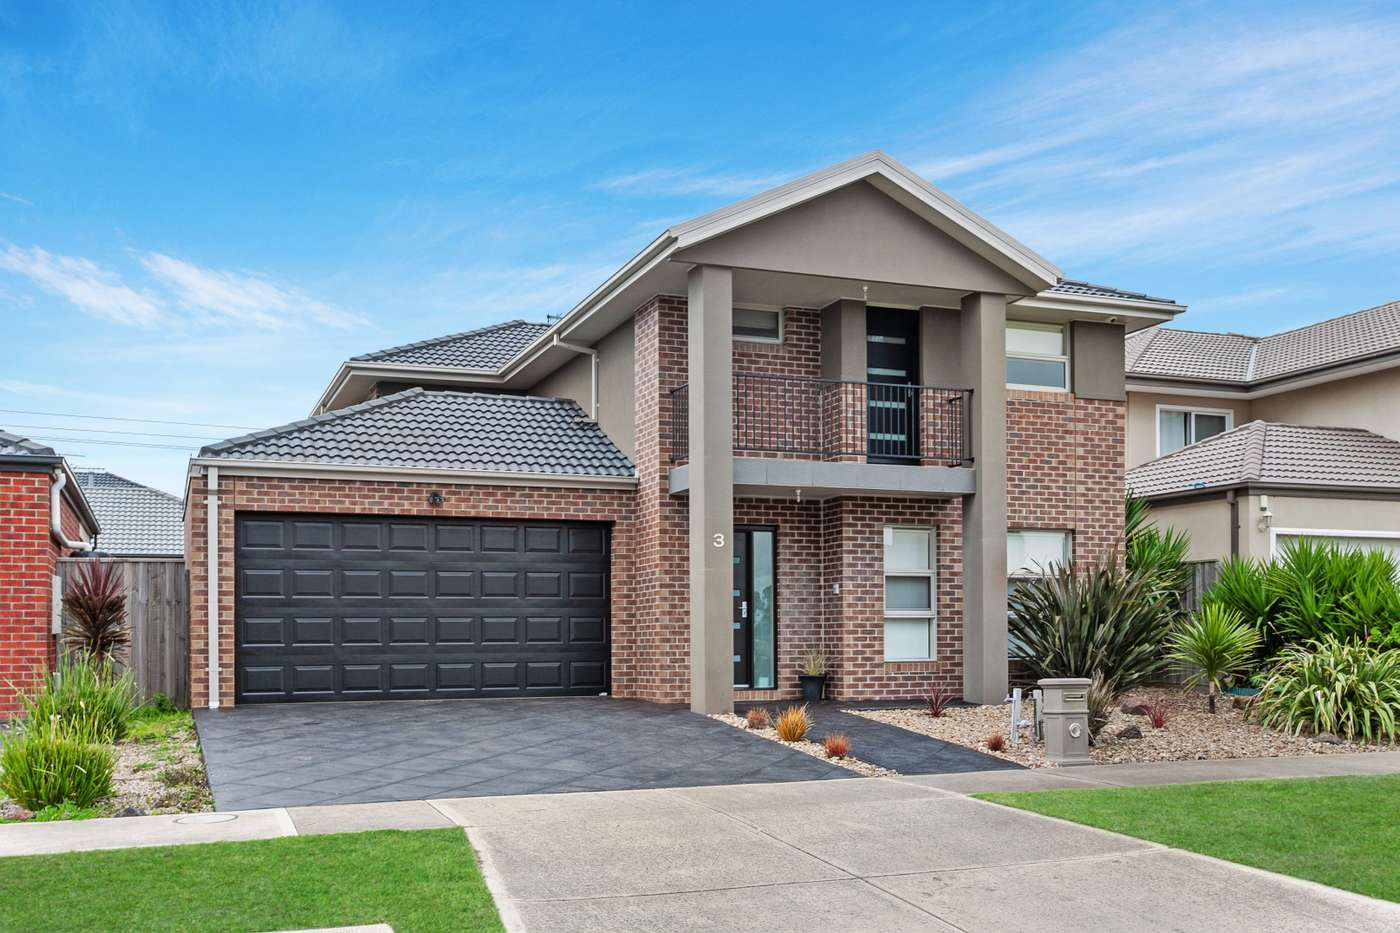 Main view of Homely house listing, 3 Hotspur Drive, Wollert, VIC 3750